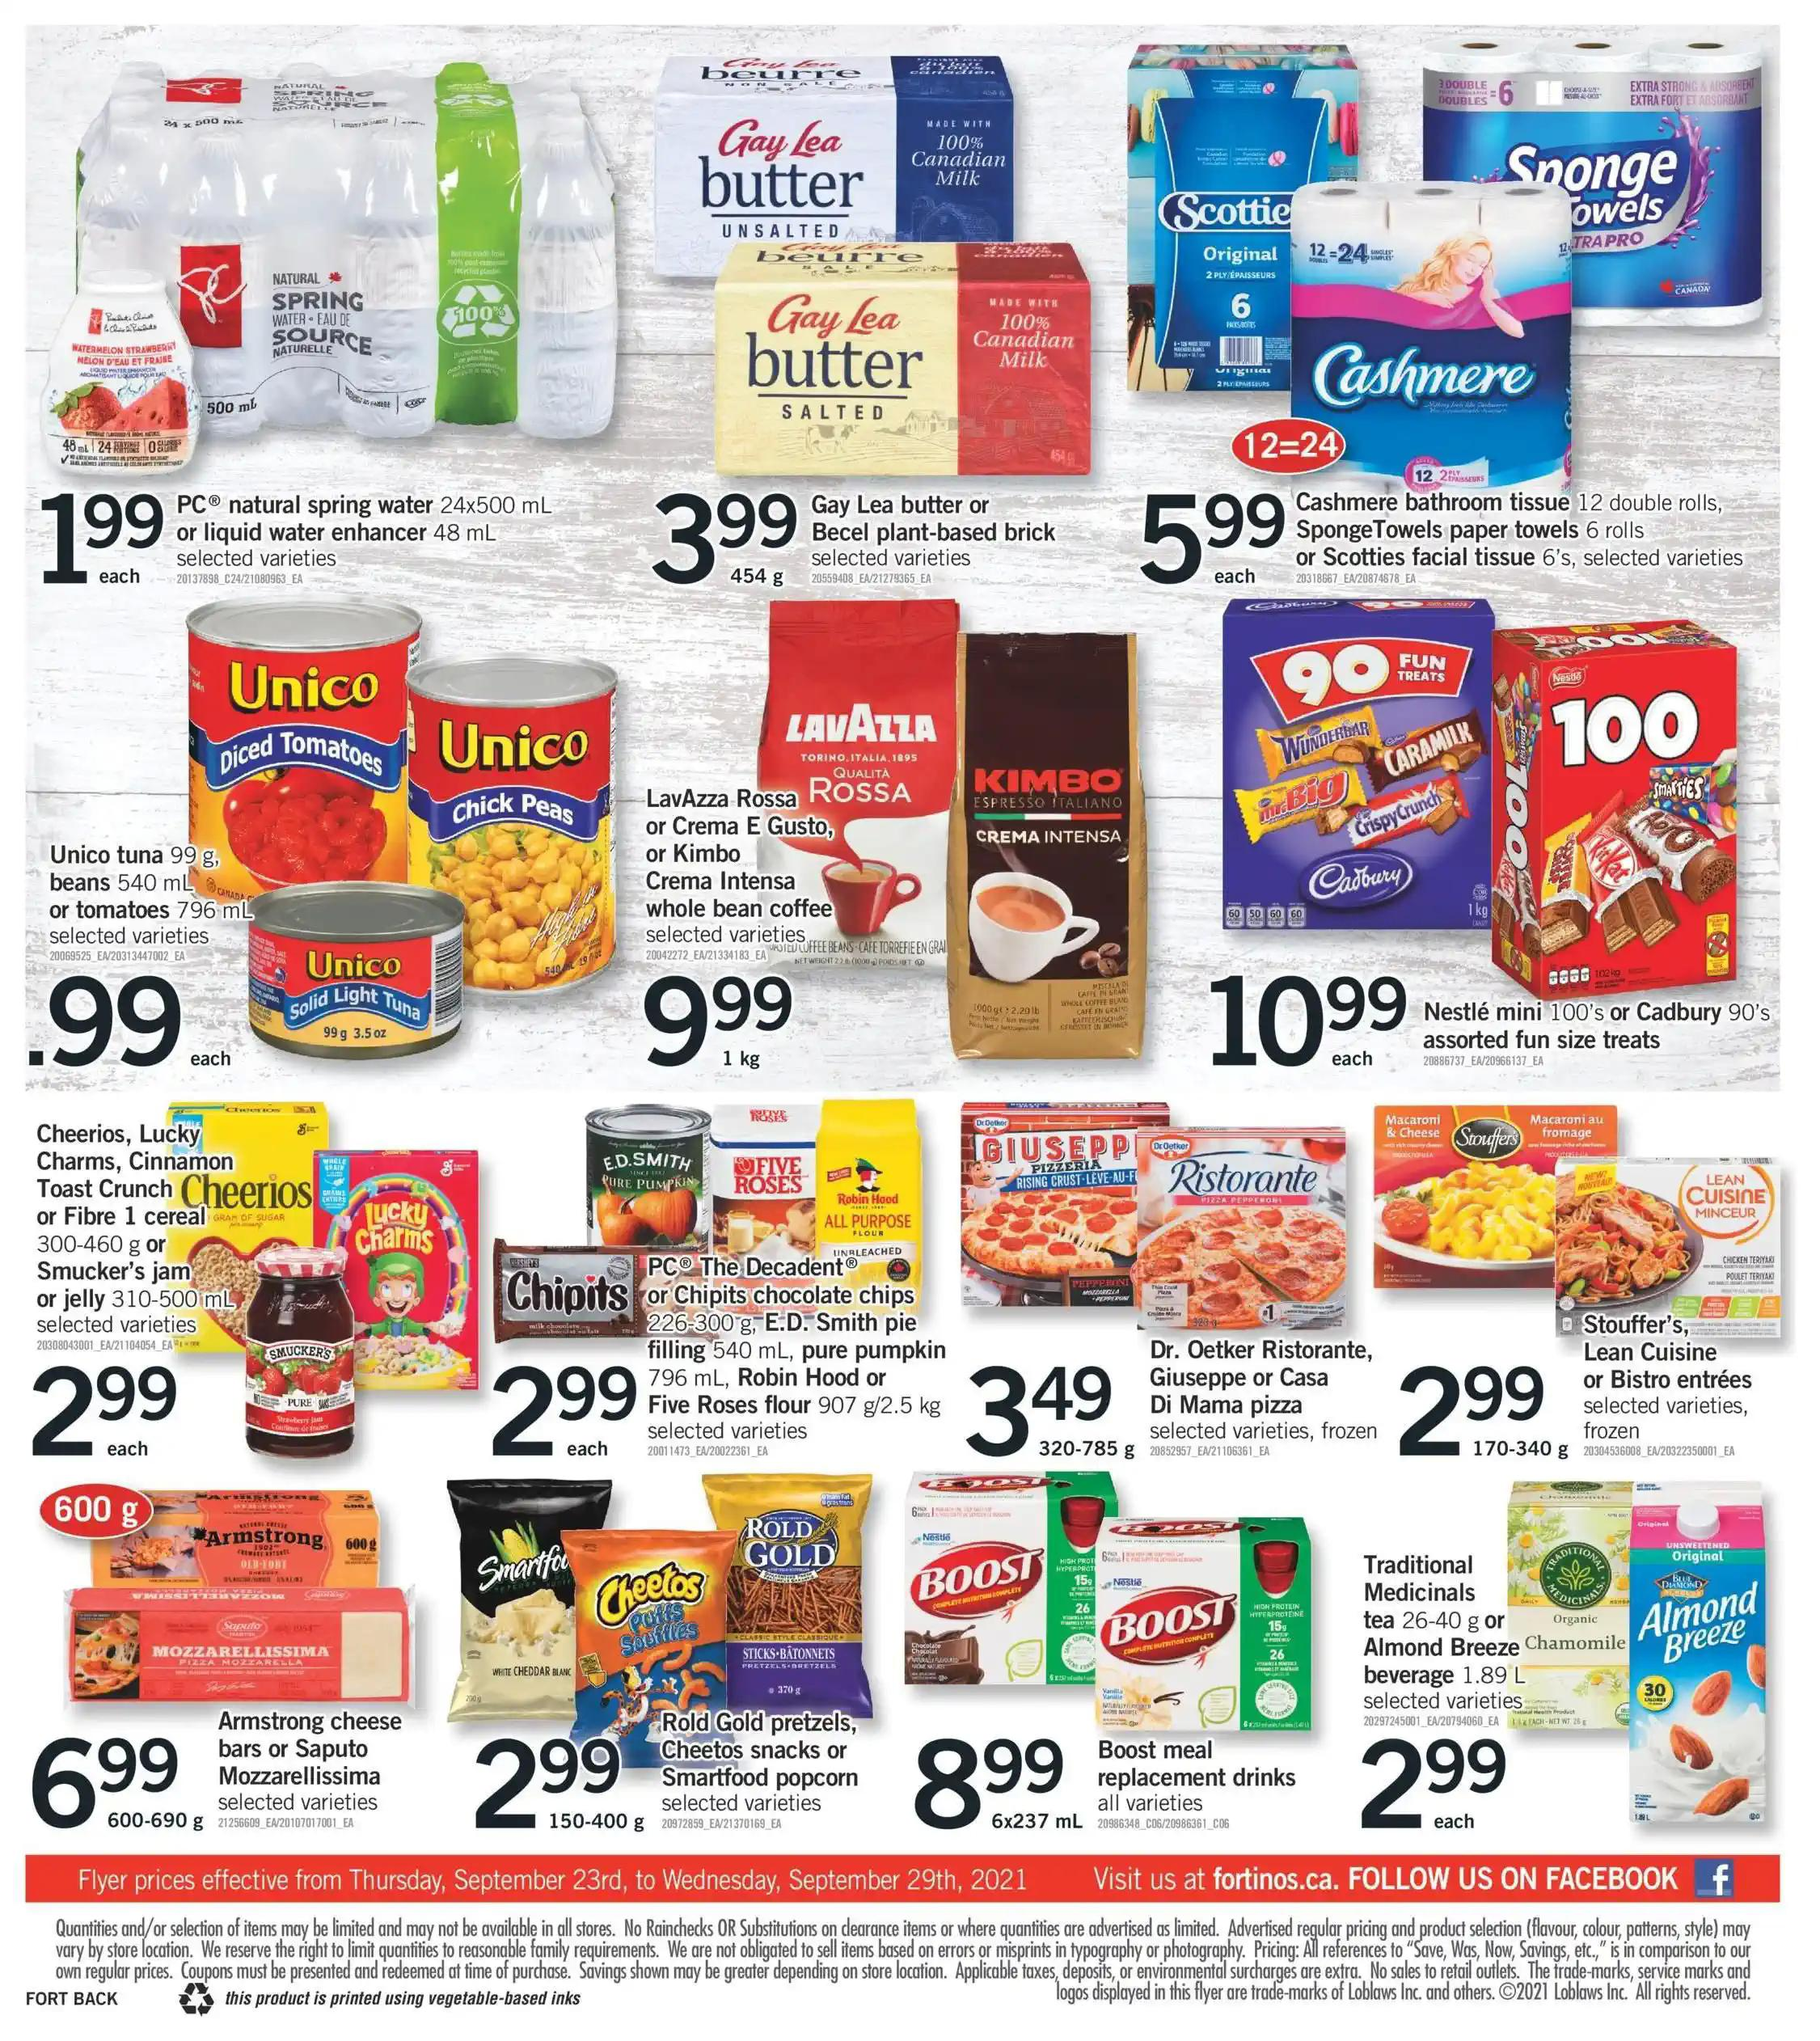 Fortinos - Weekly Flyer Specials - Page 2